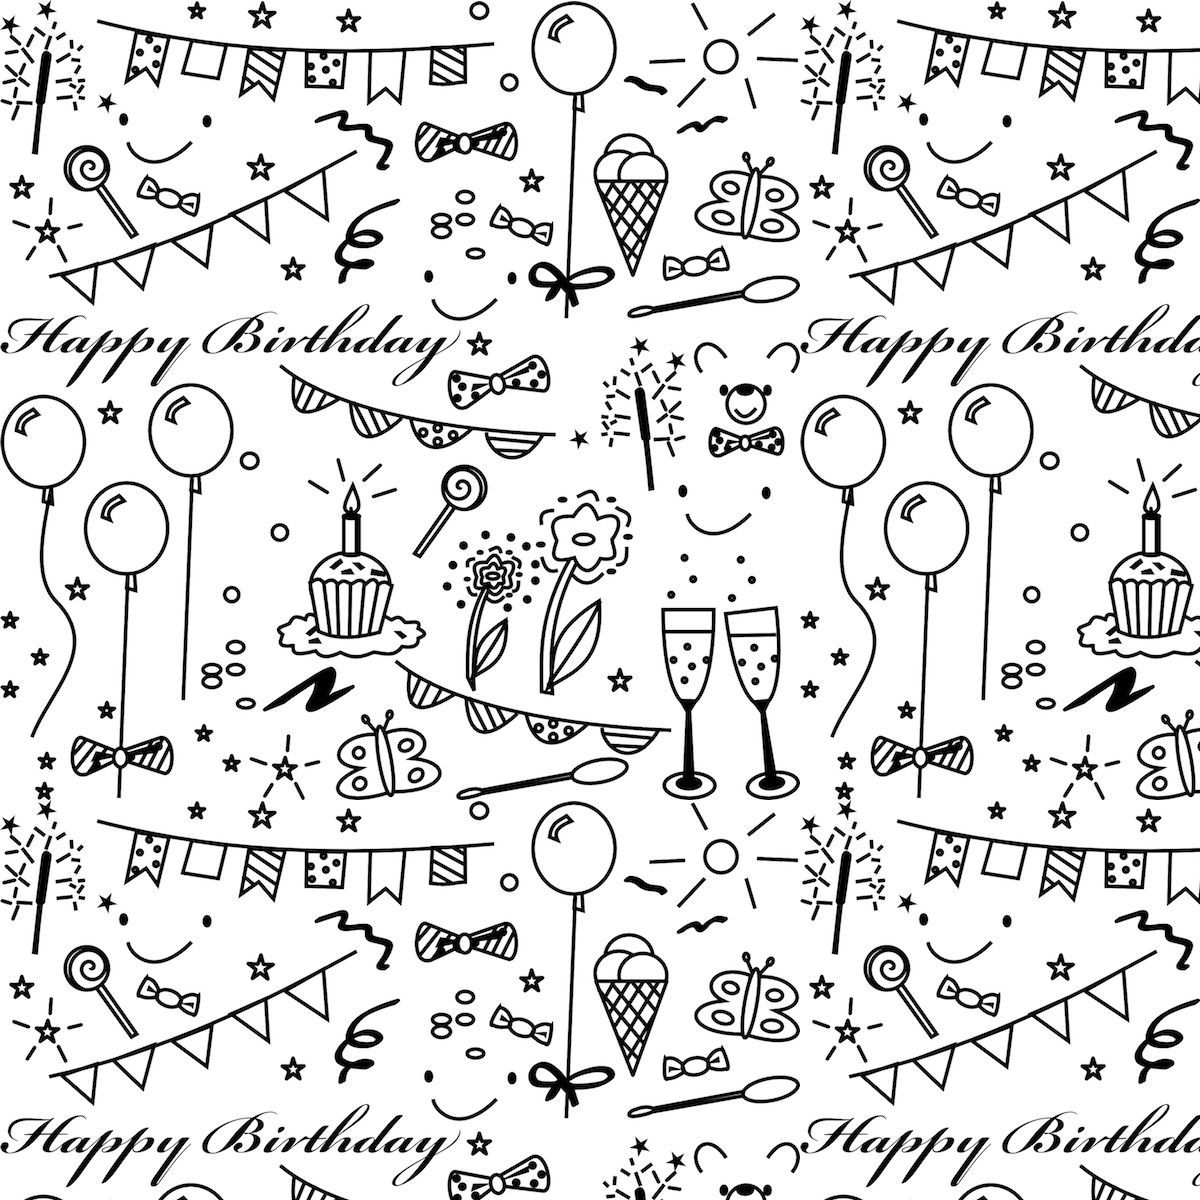 Today I Created A Free Printable Birthday Pattern In Black